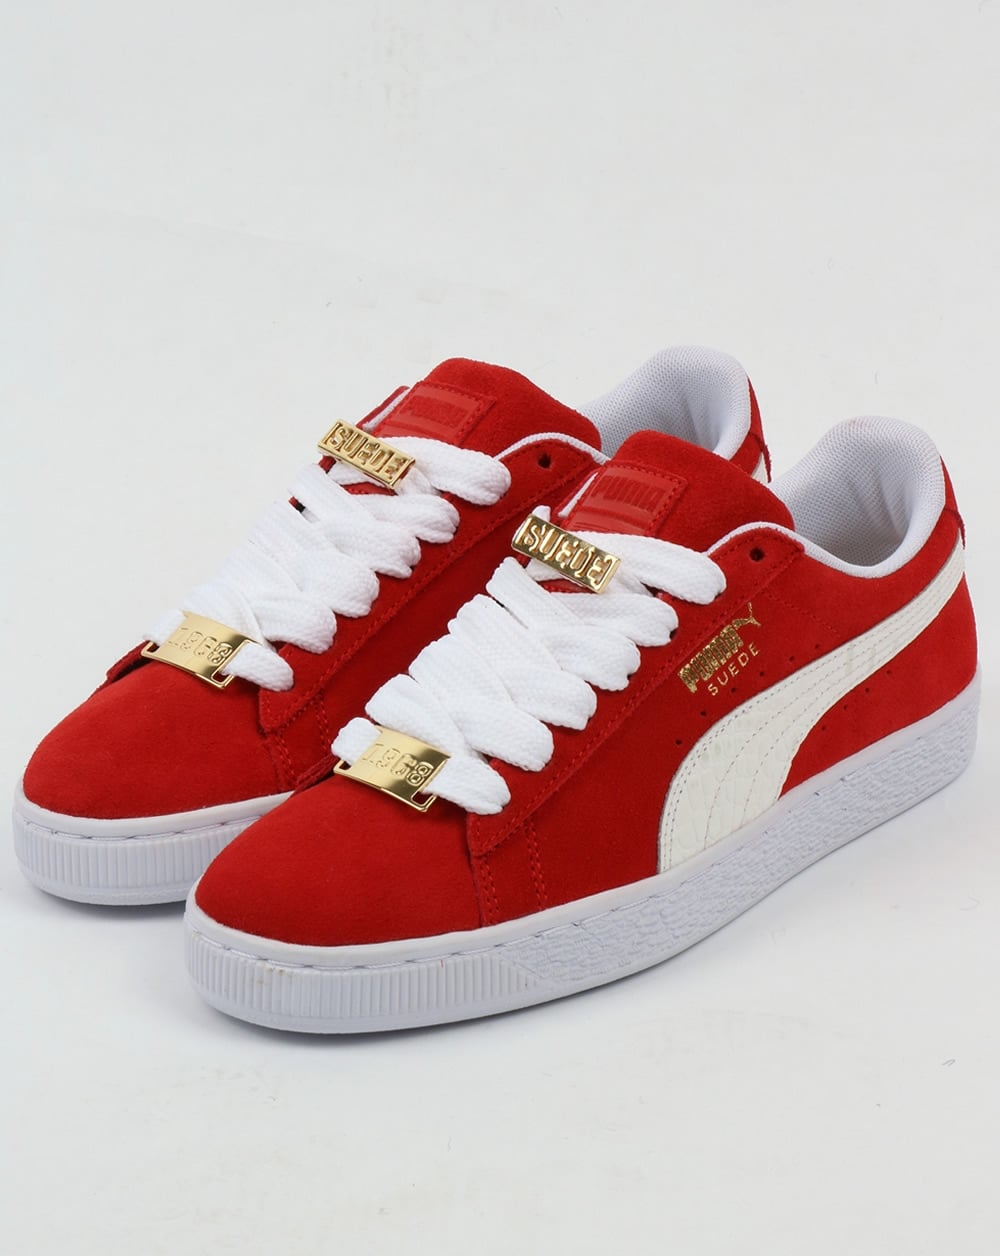 Puma Suede Classic BBOY Fabulous - Red